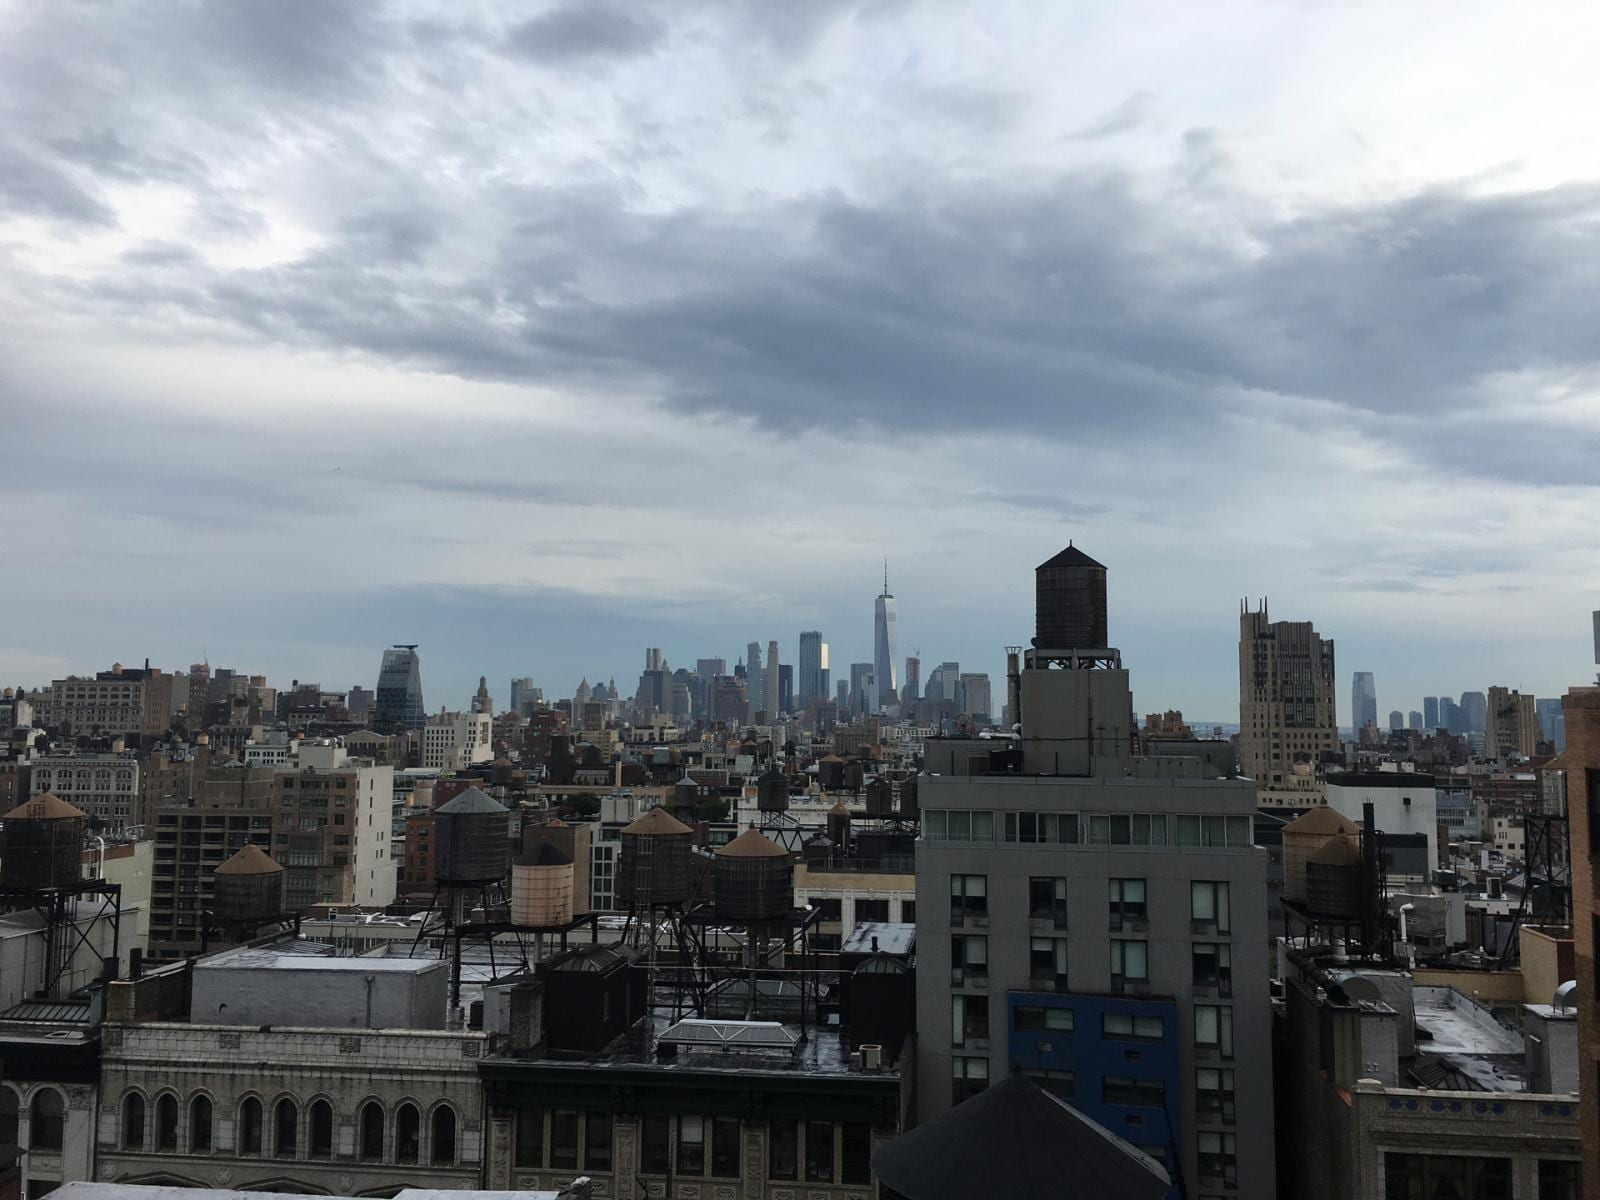 Therefore We Came Up With This List Of The Best Rooftop Restaurants Nyc To Make Decision A Little Bit Easier And Dinner Lot Better For You Enjoy